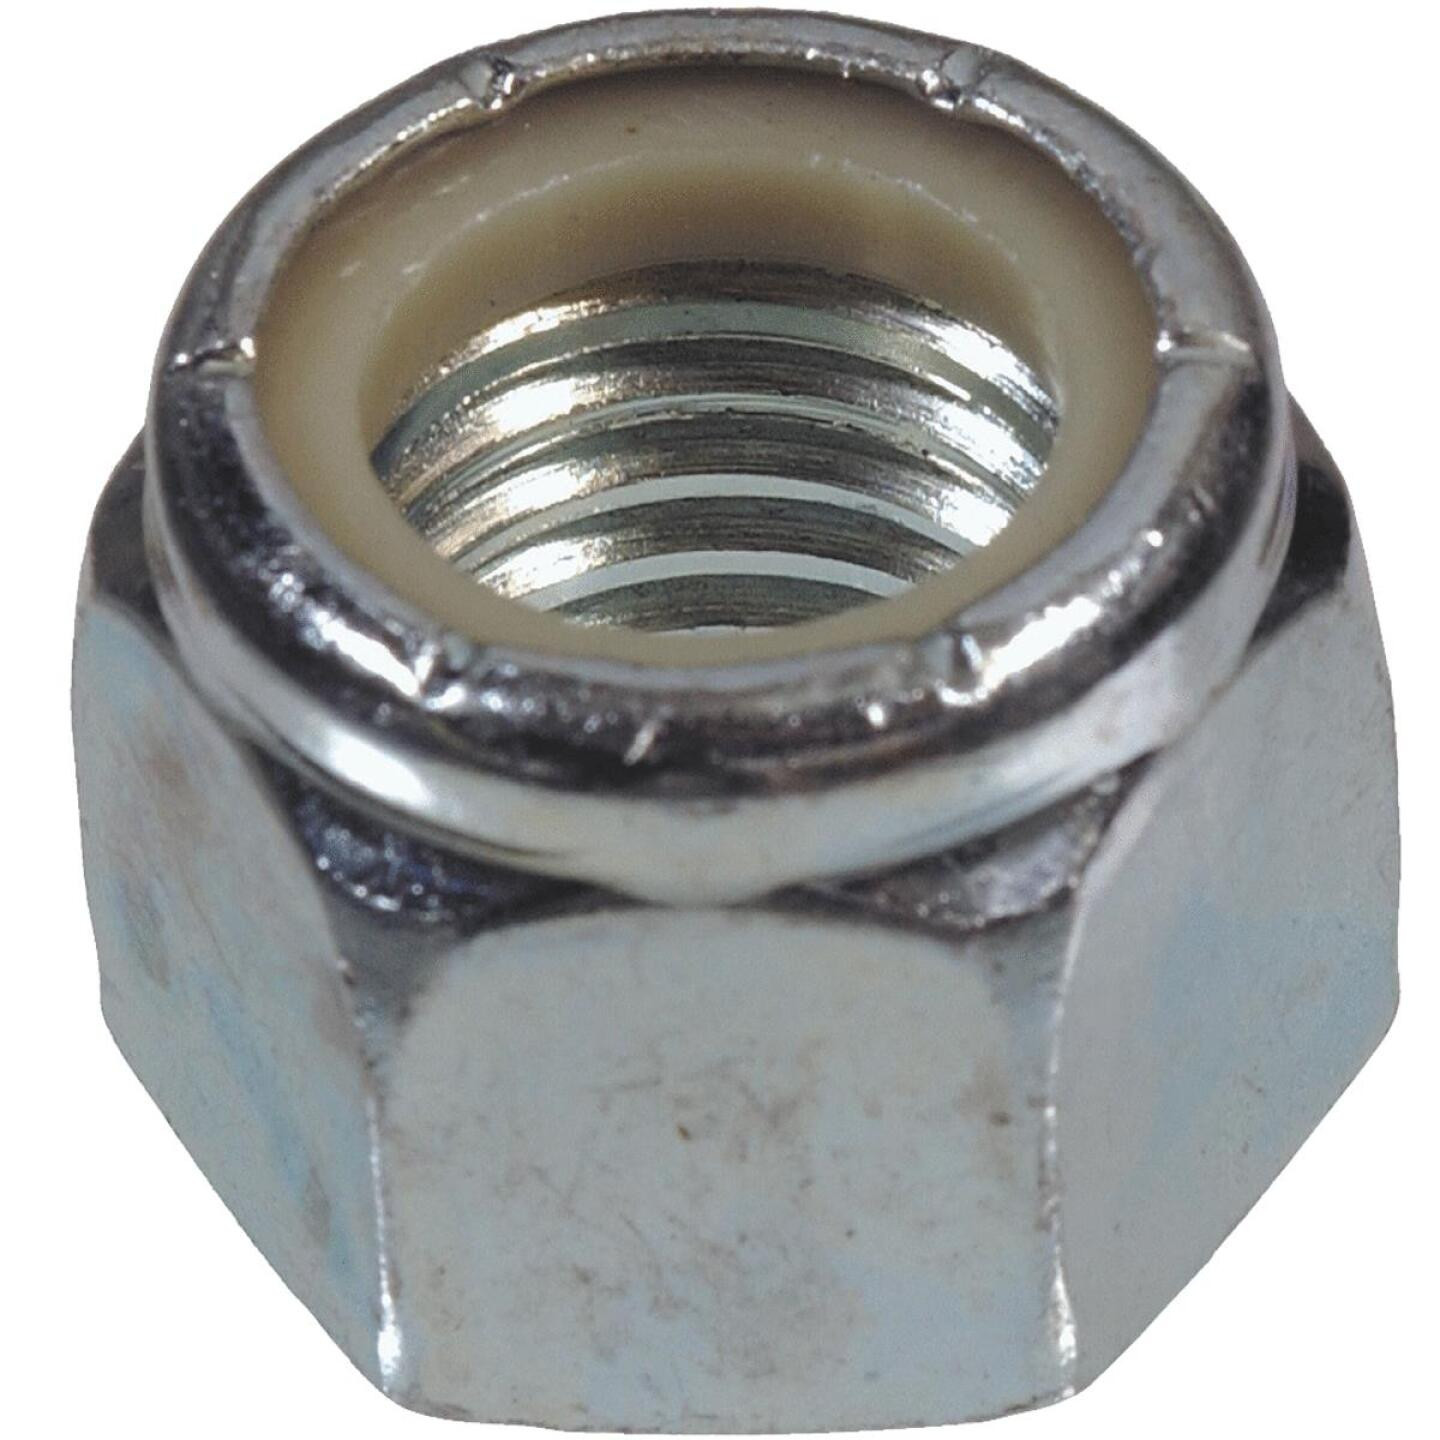 Hillman 3/8 In. 16 tpi Steel Course Thread Nylon Insert Lock Nut (100 Ct.) Image 1